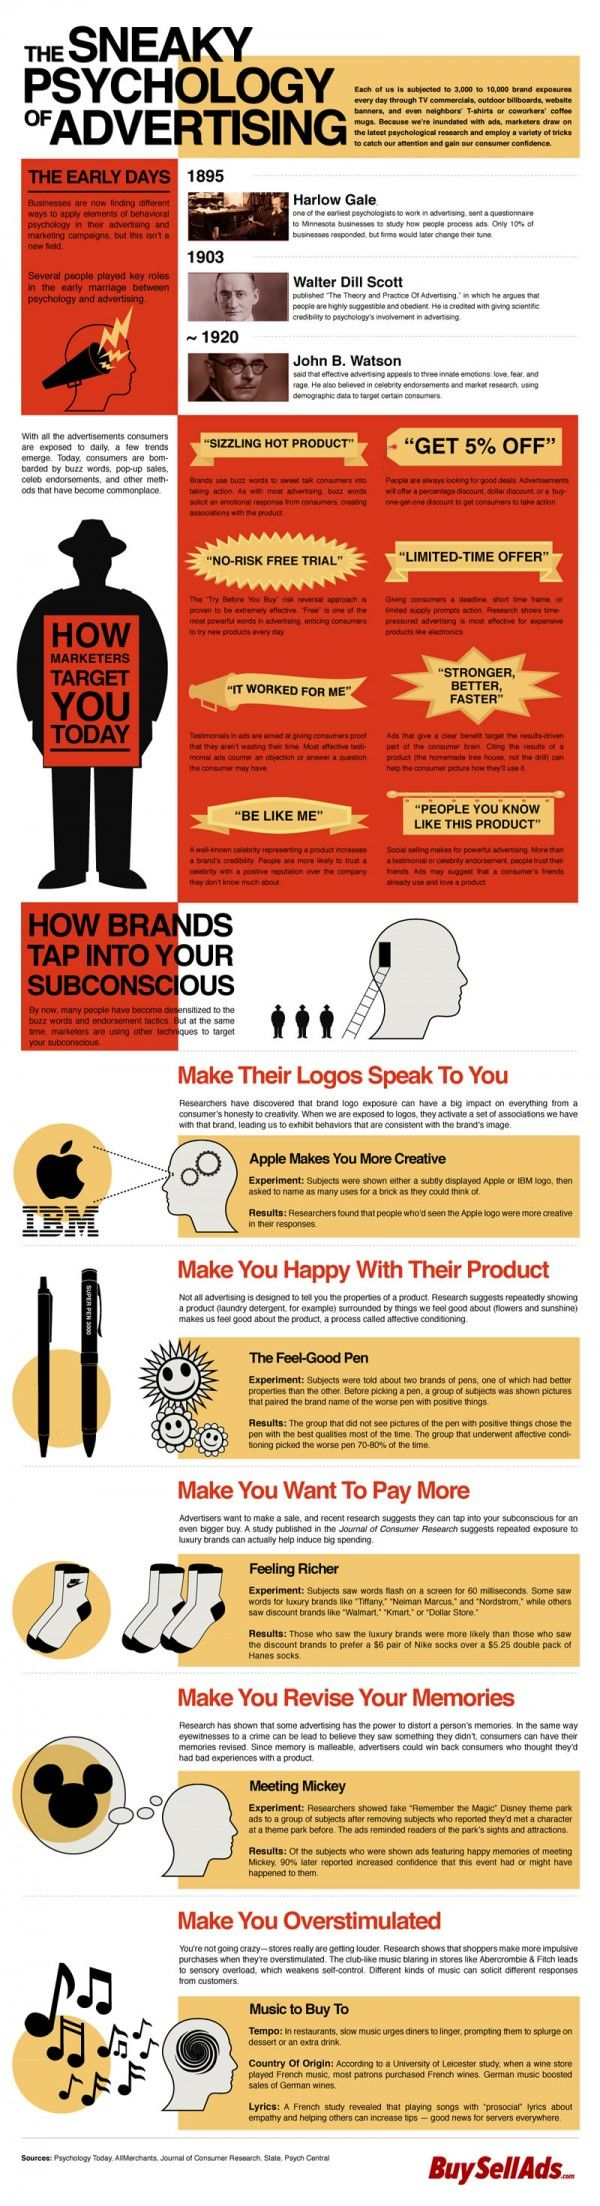 psychology-of-advertising-infographic-infographic